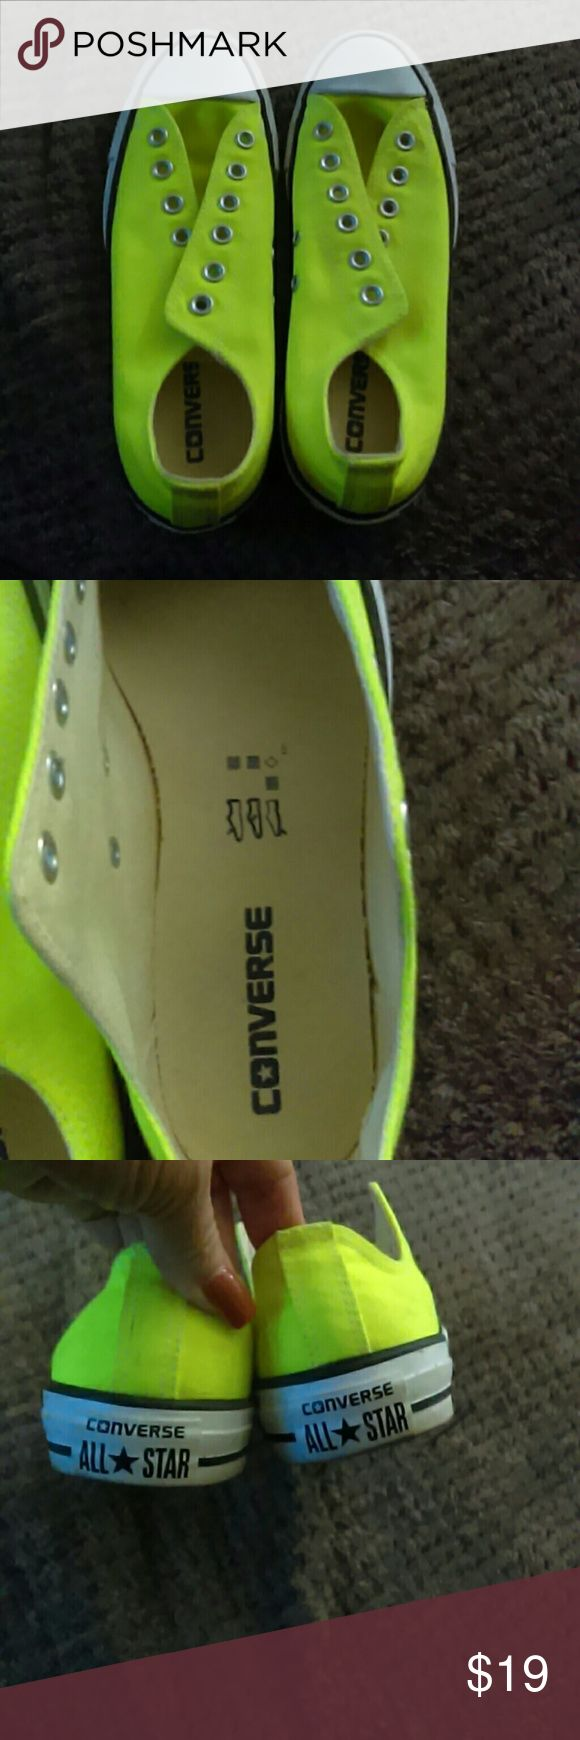 Converse neon yellow Size 8 neon yellow Converse Barely Used in great condition Converse Shoes Sneakers